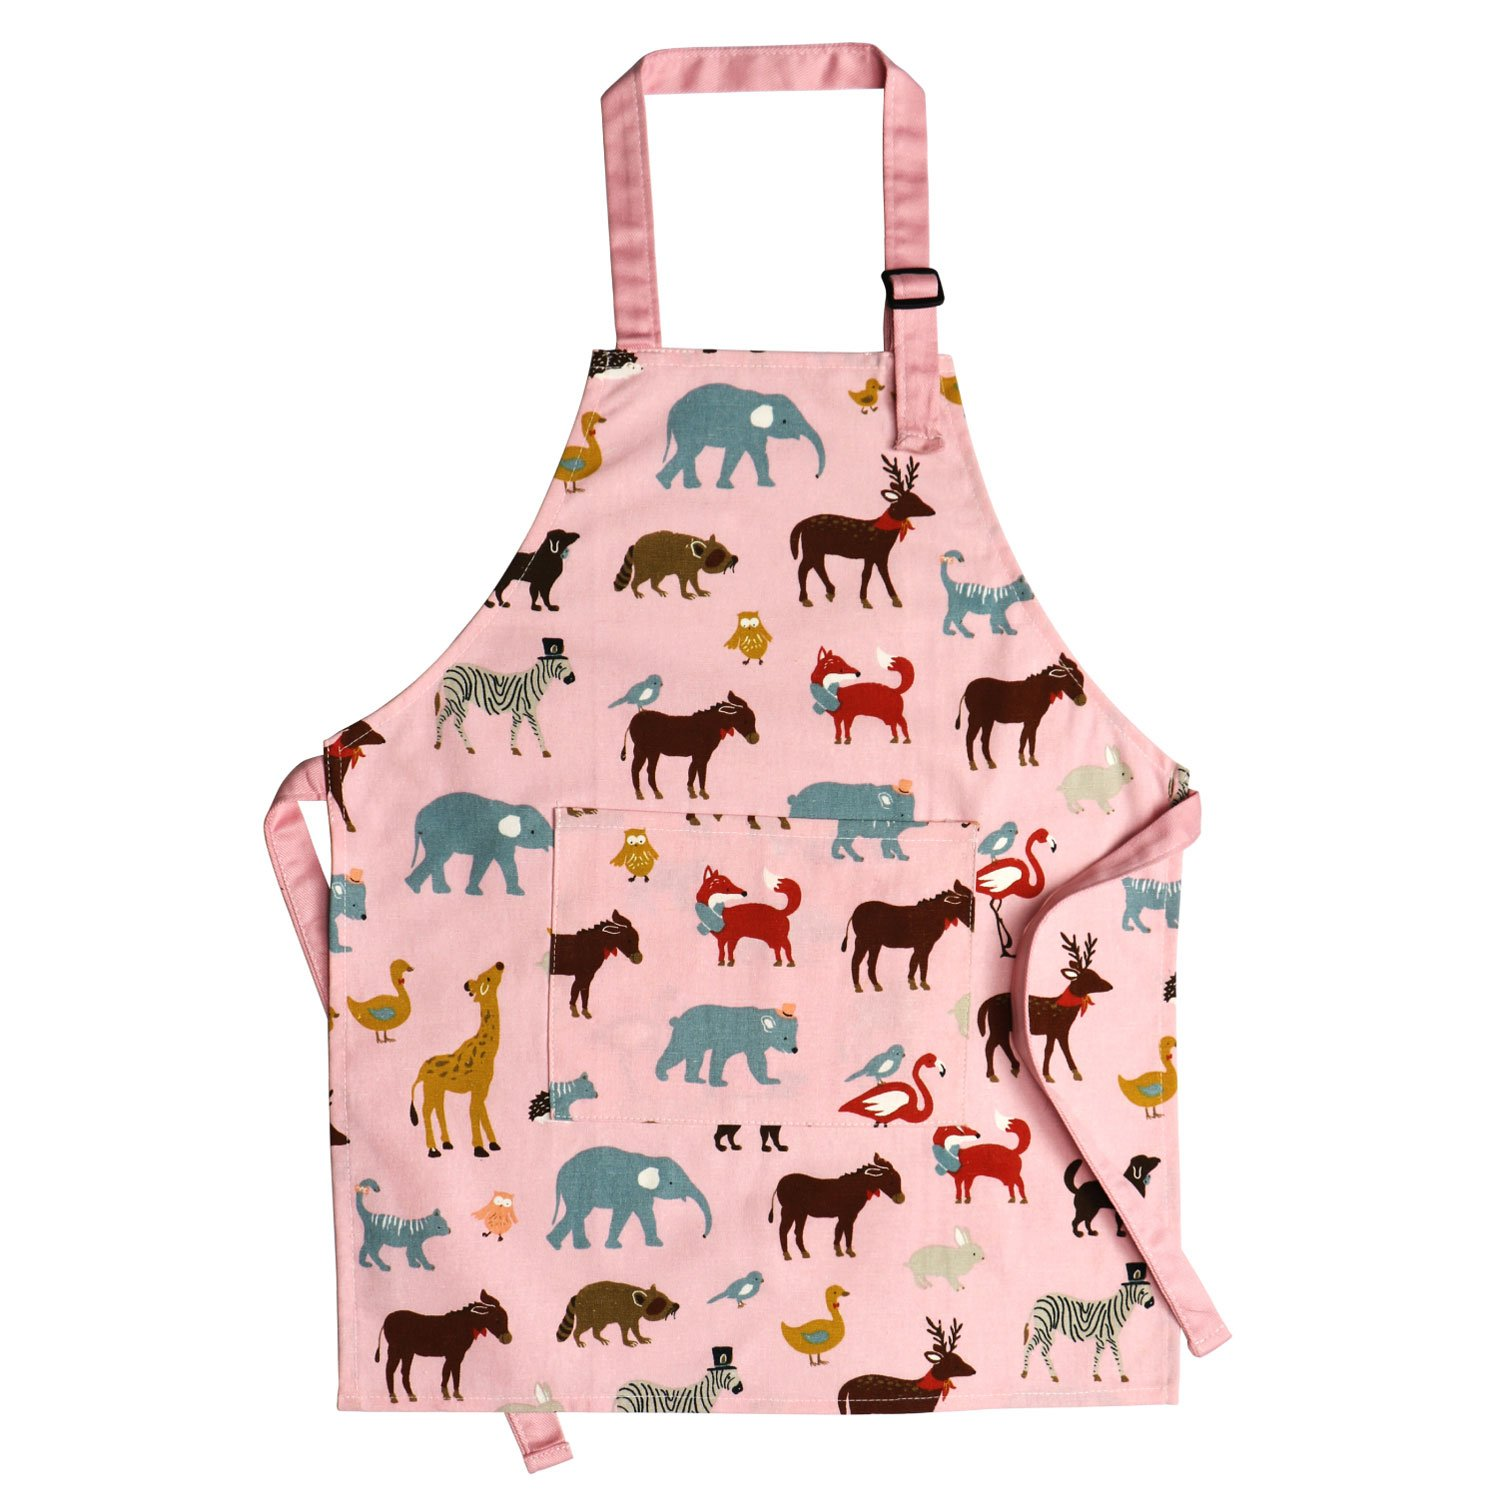 Jennice House Children's Aprons 100% Pure Cotton Canvas Kids Artists Aprons with Adjustable Neck Strap and Pocket Animal Print Child Chef Aprons for Boys and Girls